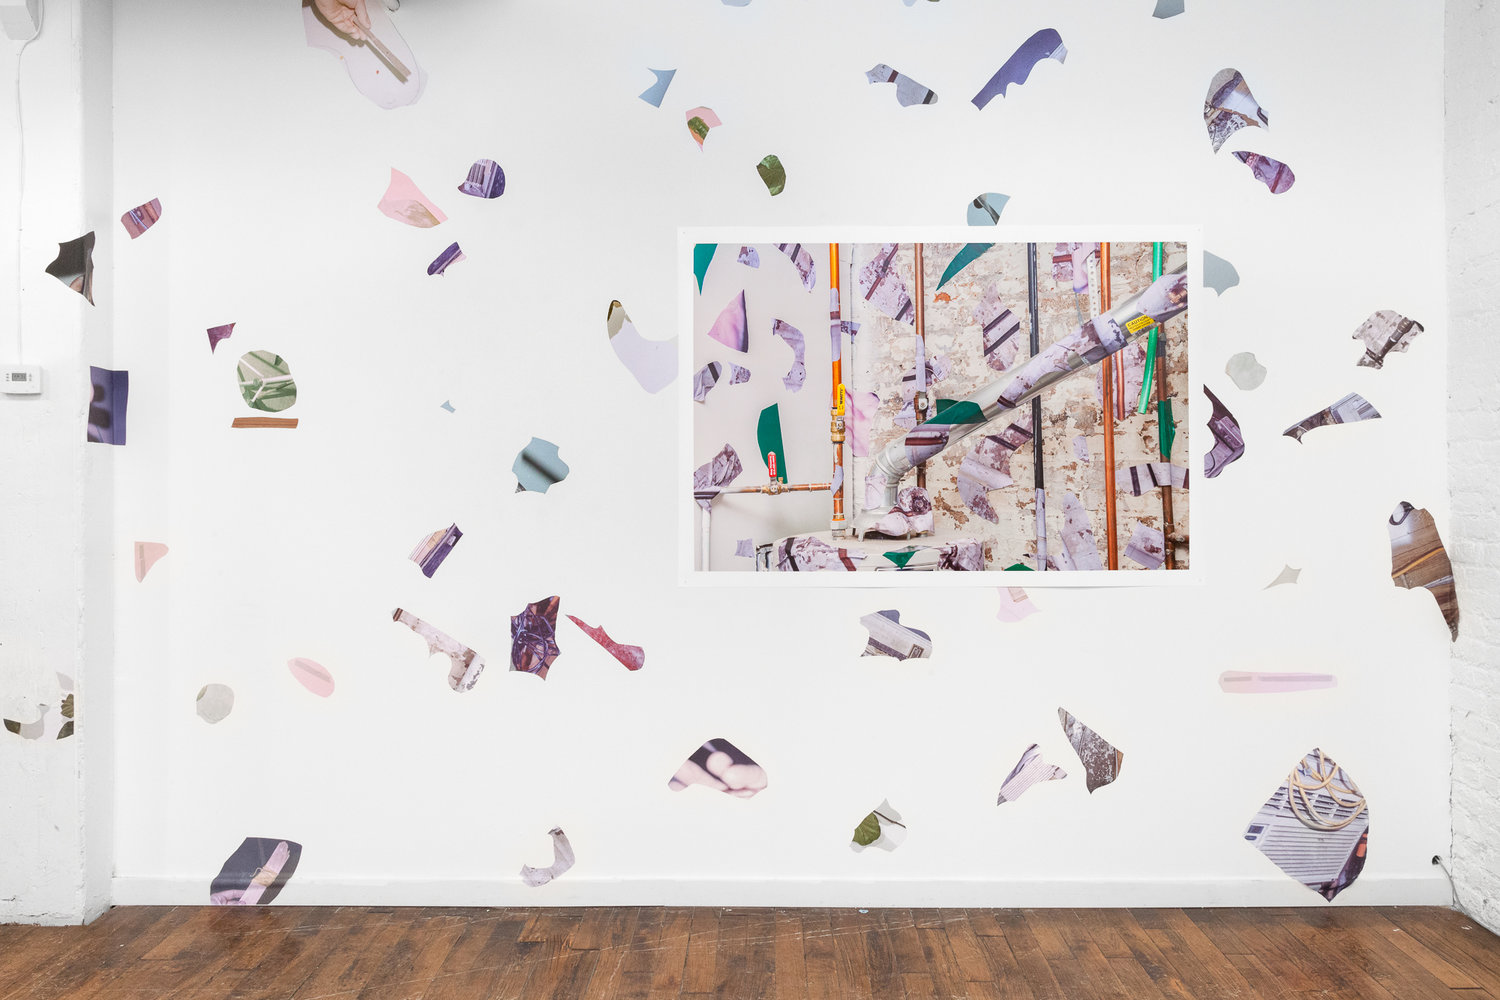 AWARE: Robert Chase Heishman , LATITUDE (Chicago, IL), solo exhibition, 2019, installation view